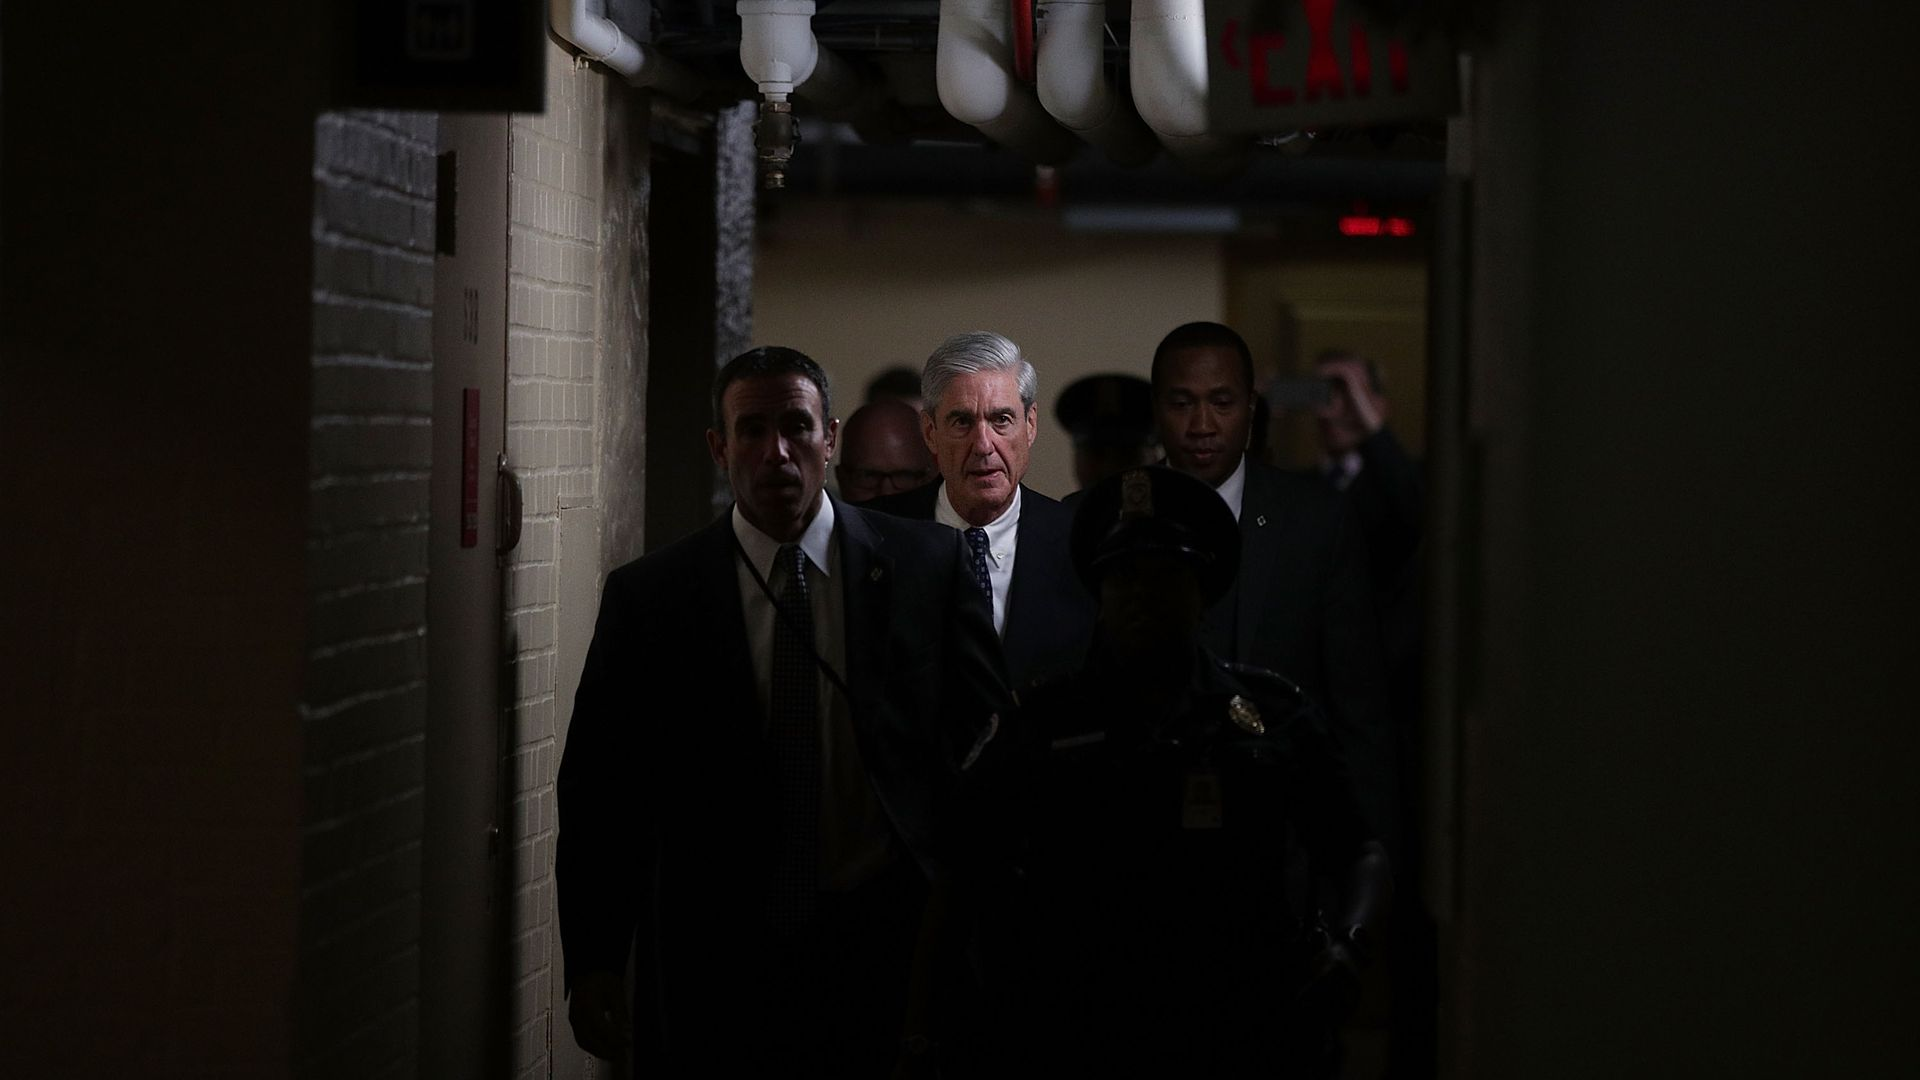 Robert Mueller walks with a group of people through a dark hallway.